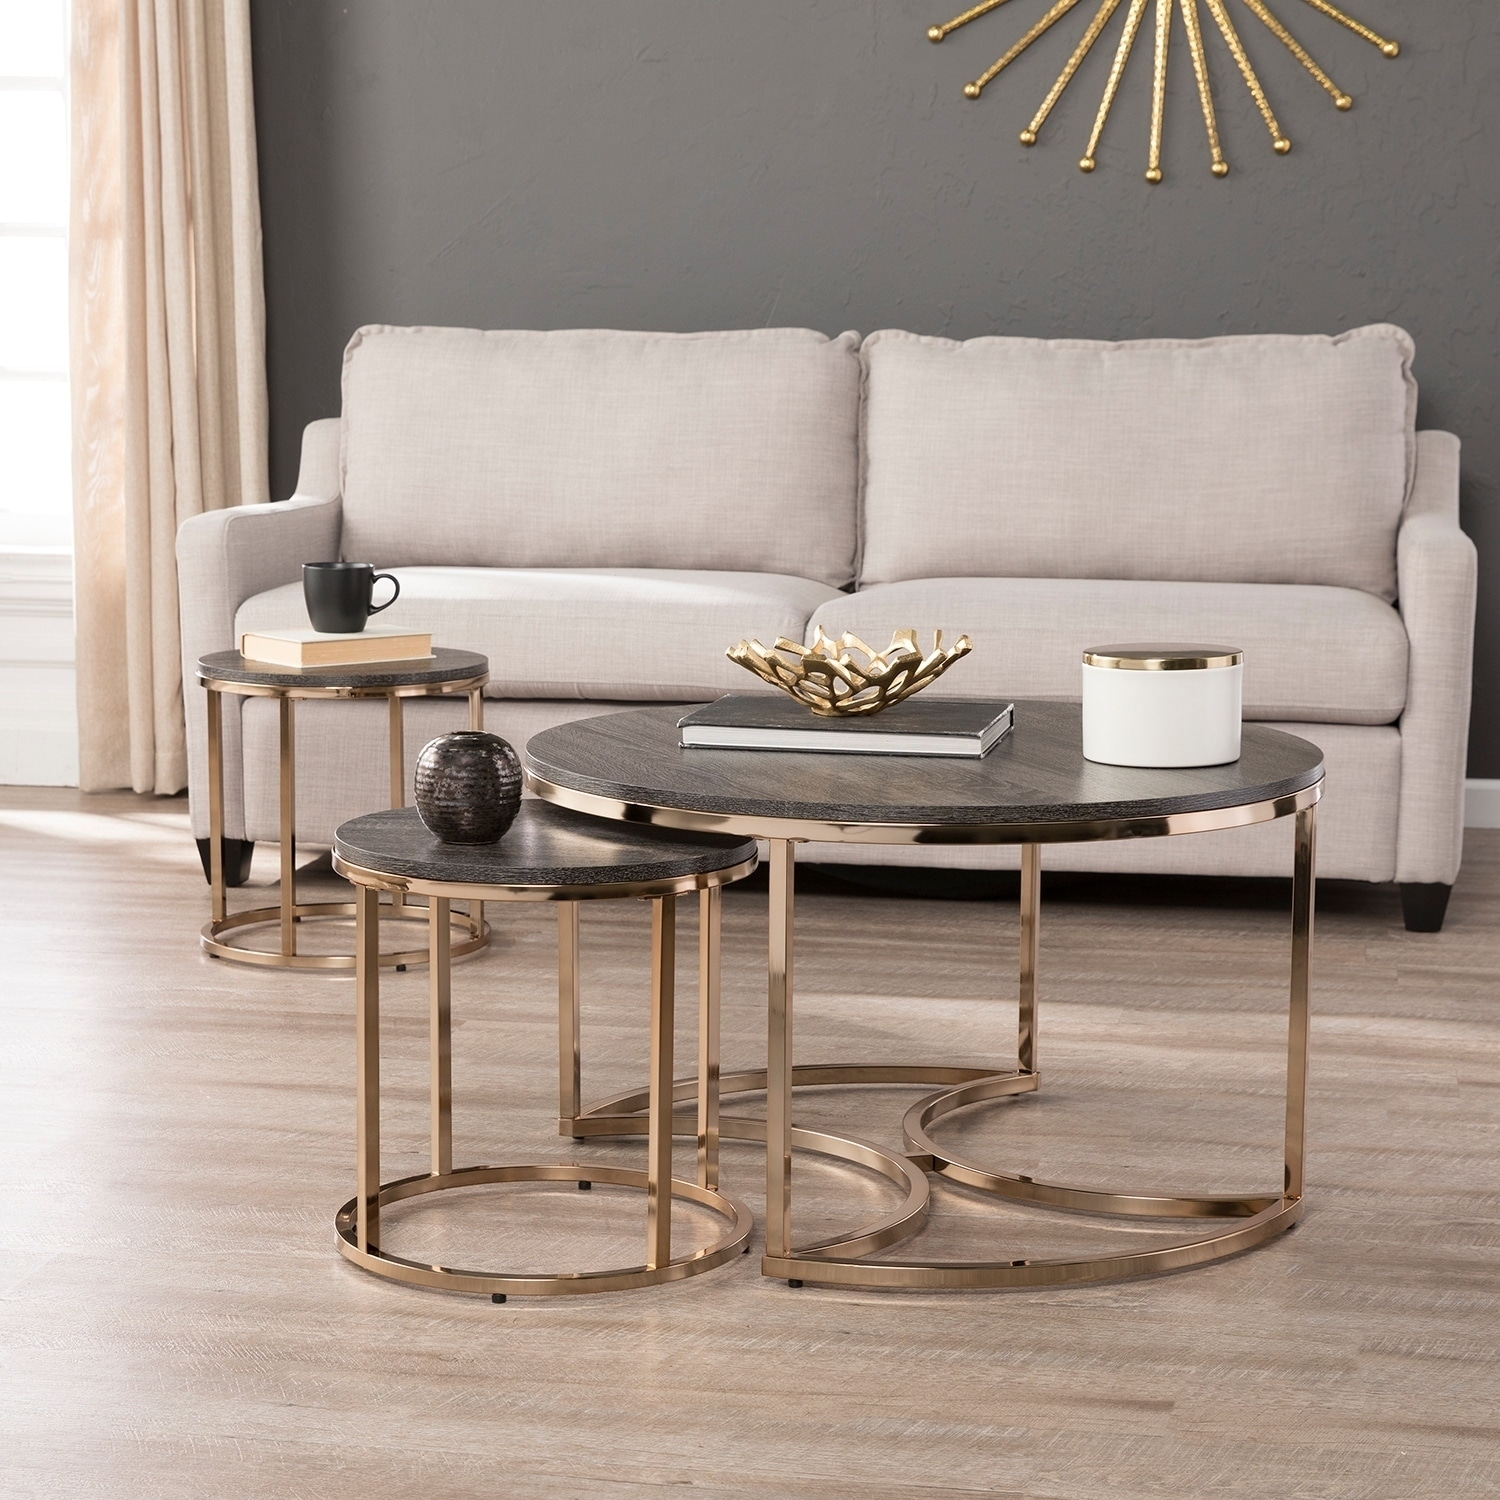 Big Sofa Occasion Buy Table Sets Coffee Console Sofa End Tables Online At